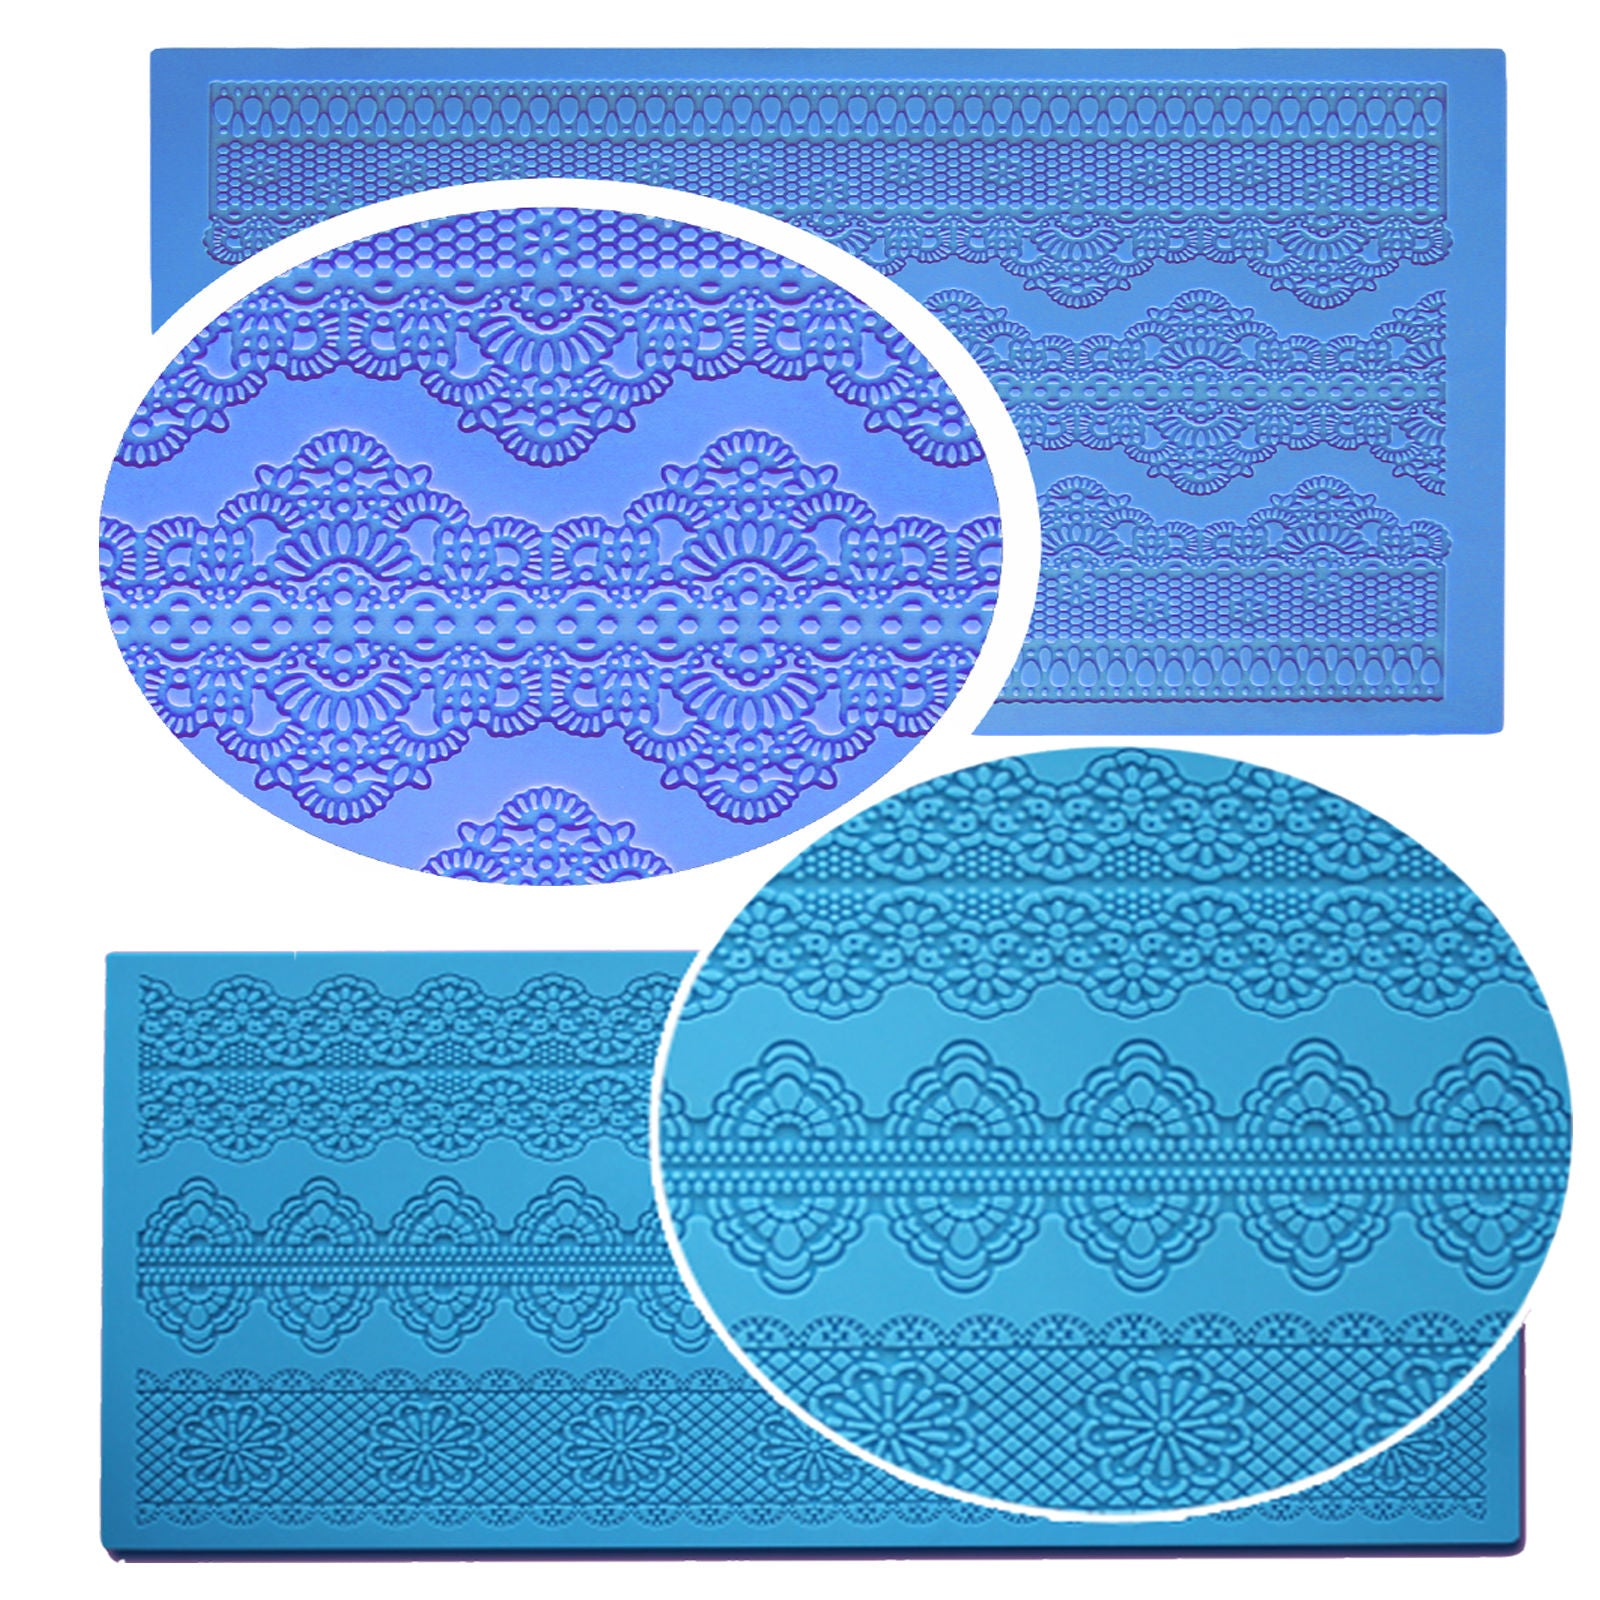 Silicone Cake Decorating Lace Icing Impression Mat For Creating Edible Lace